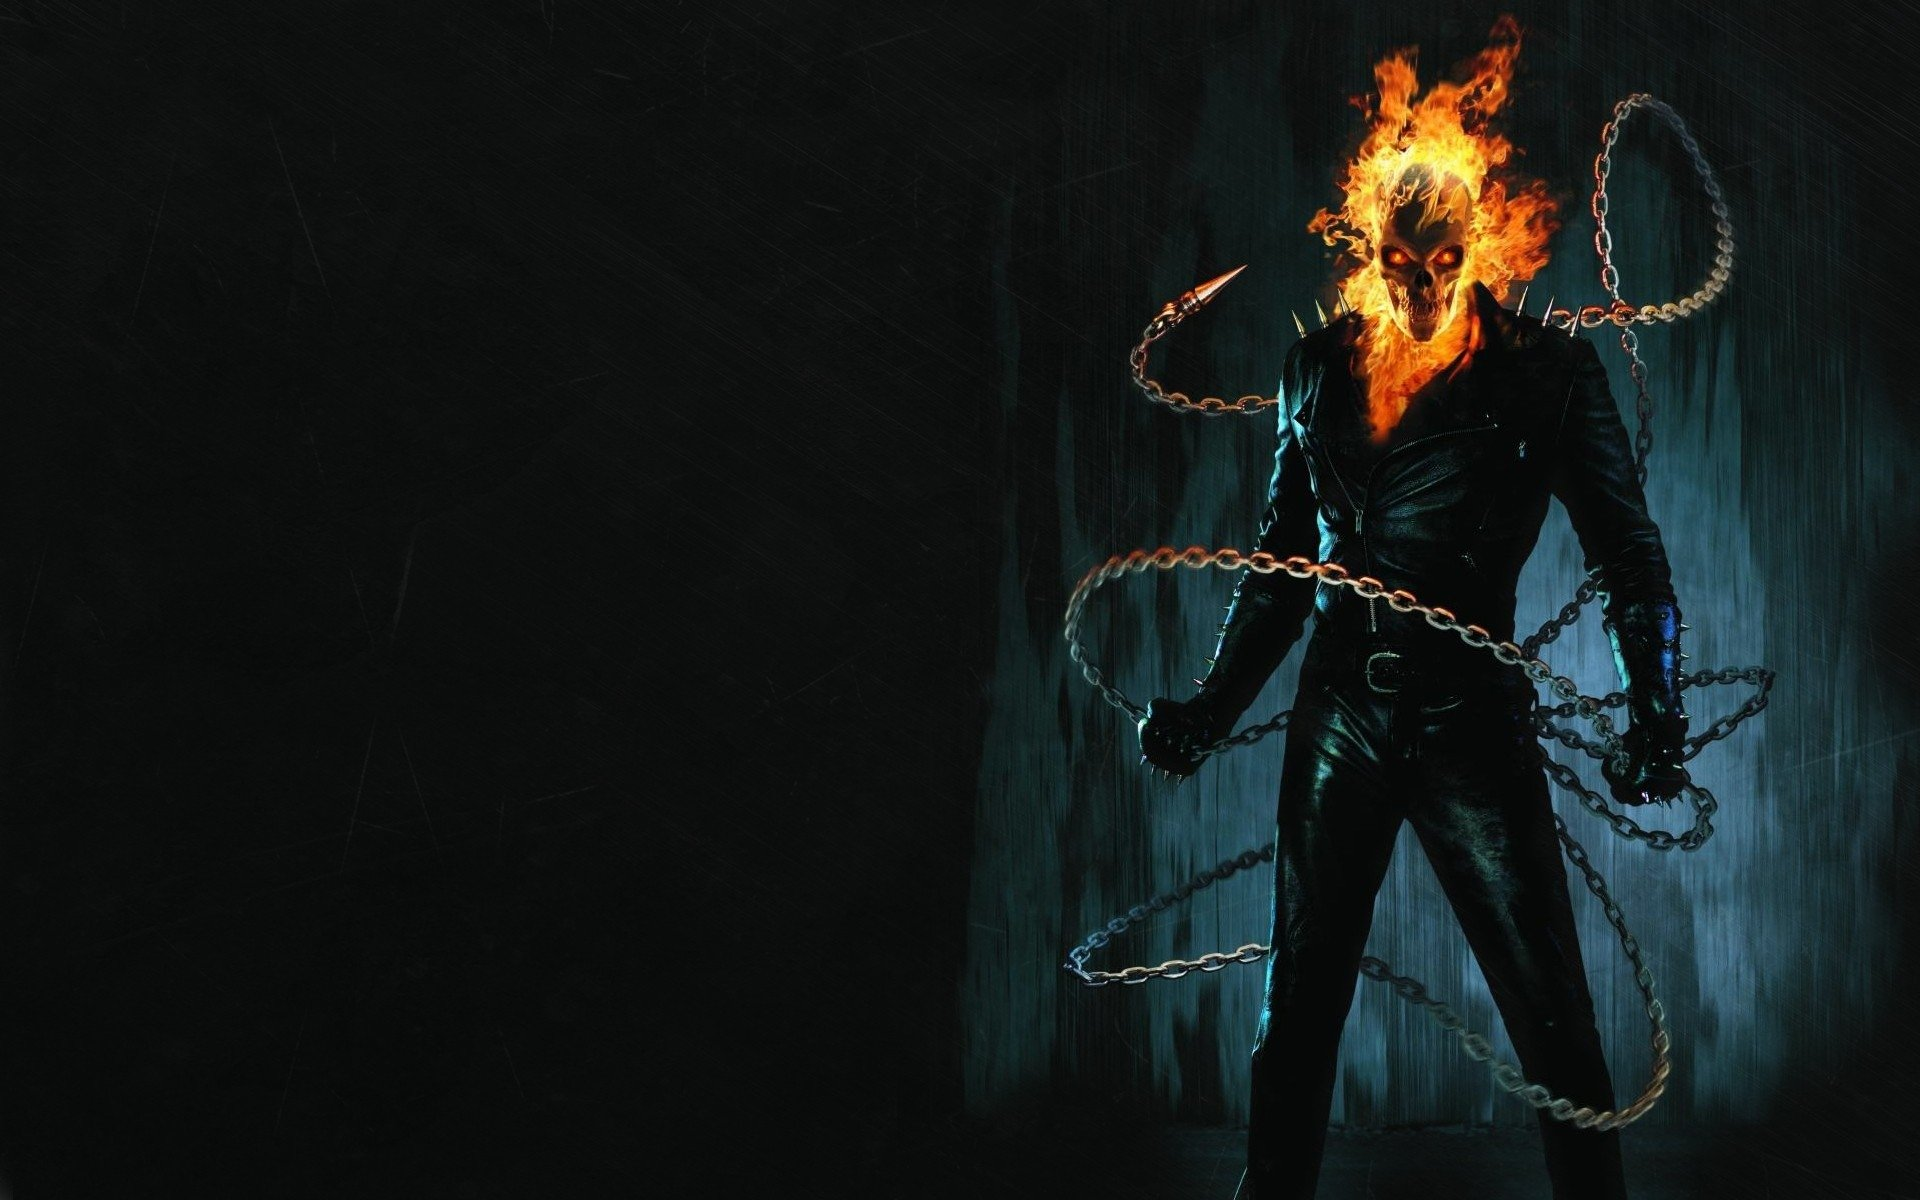 141 ghost rider hd wallpapers | background images - wallpaper abyss